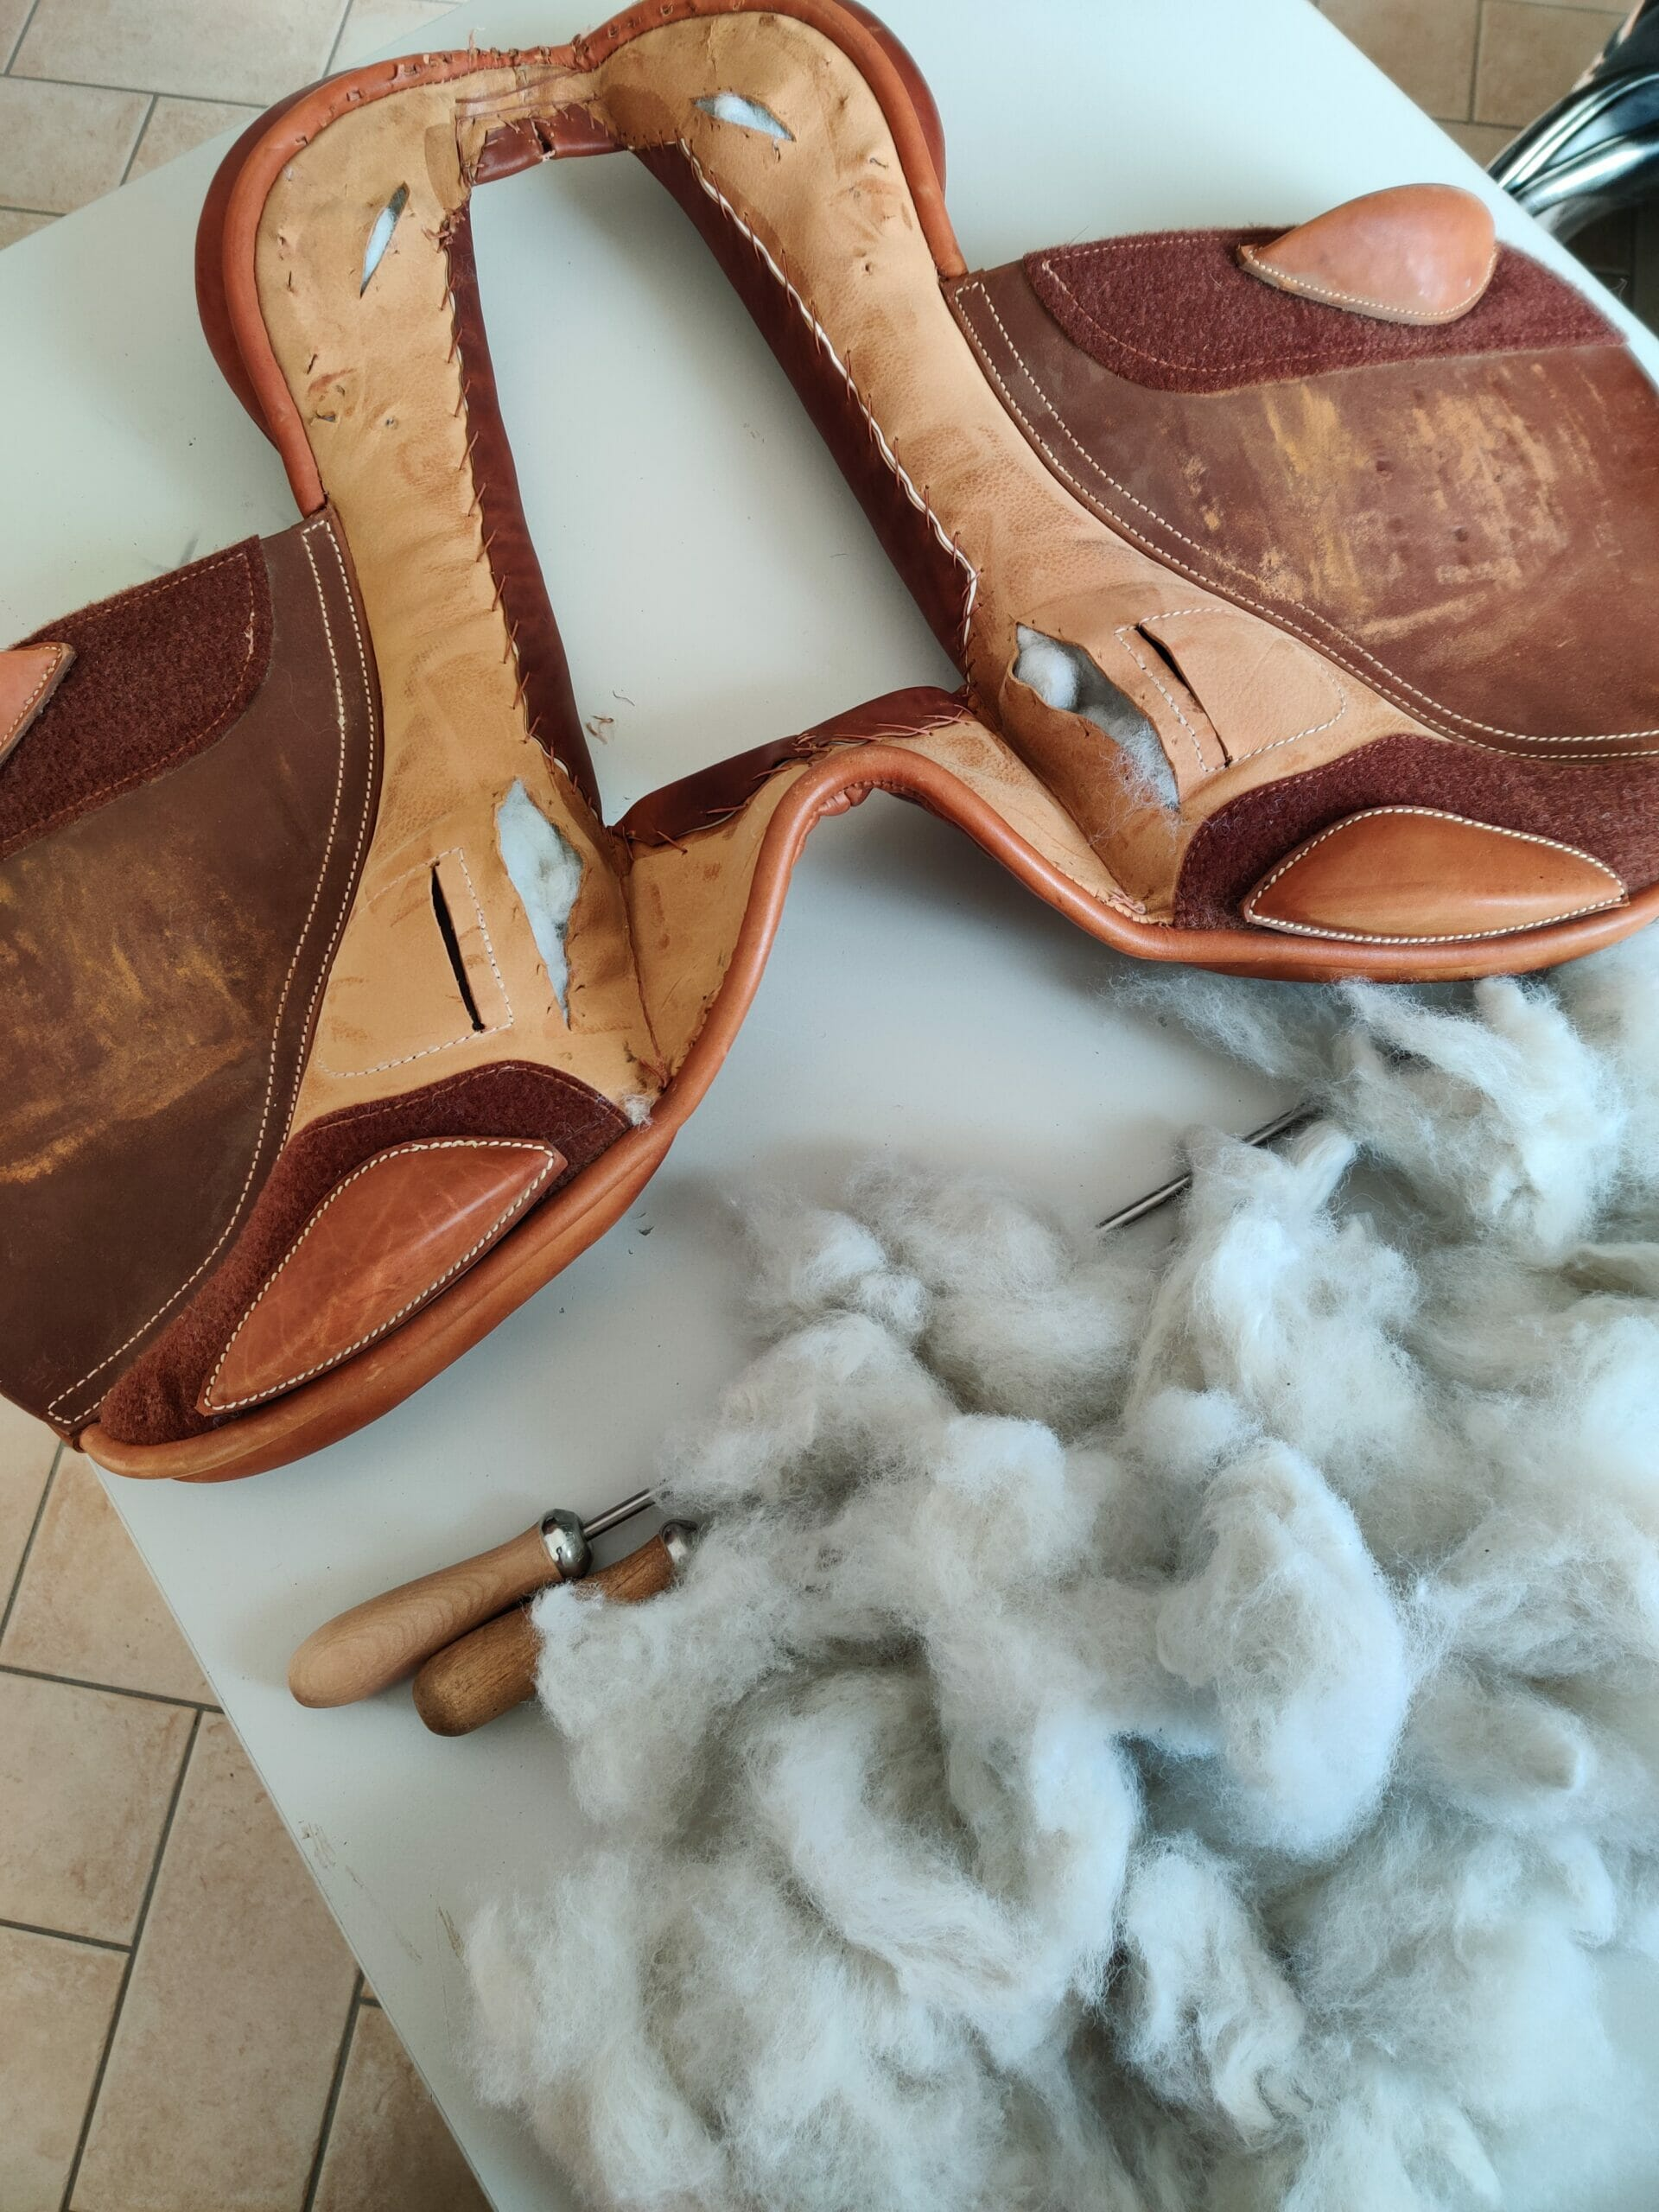 Ilaria saddle service - saddle fitting - reimbottitura cuscini